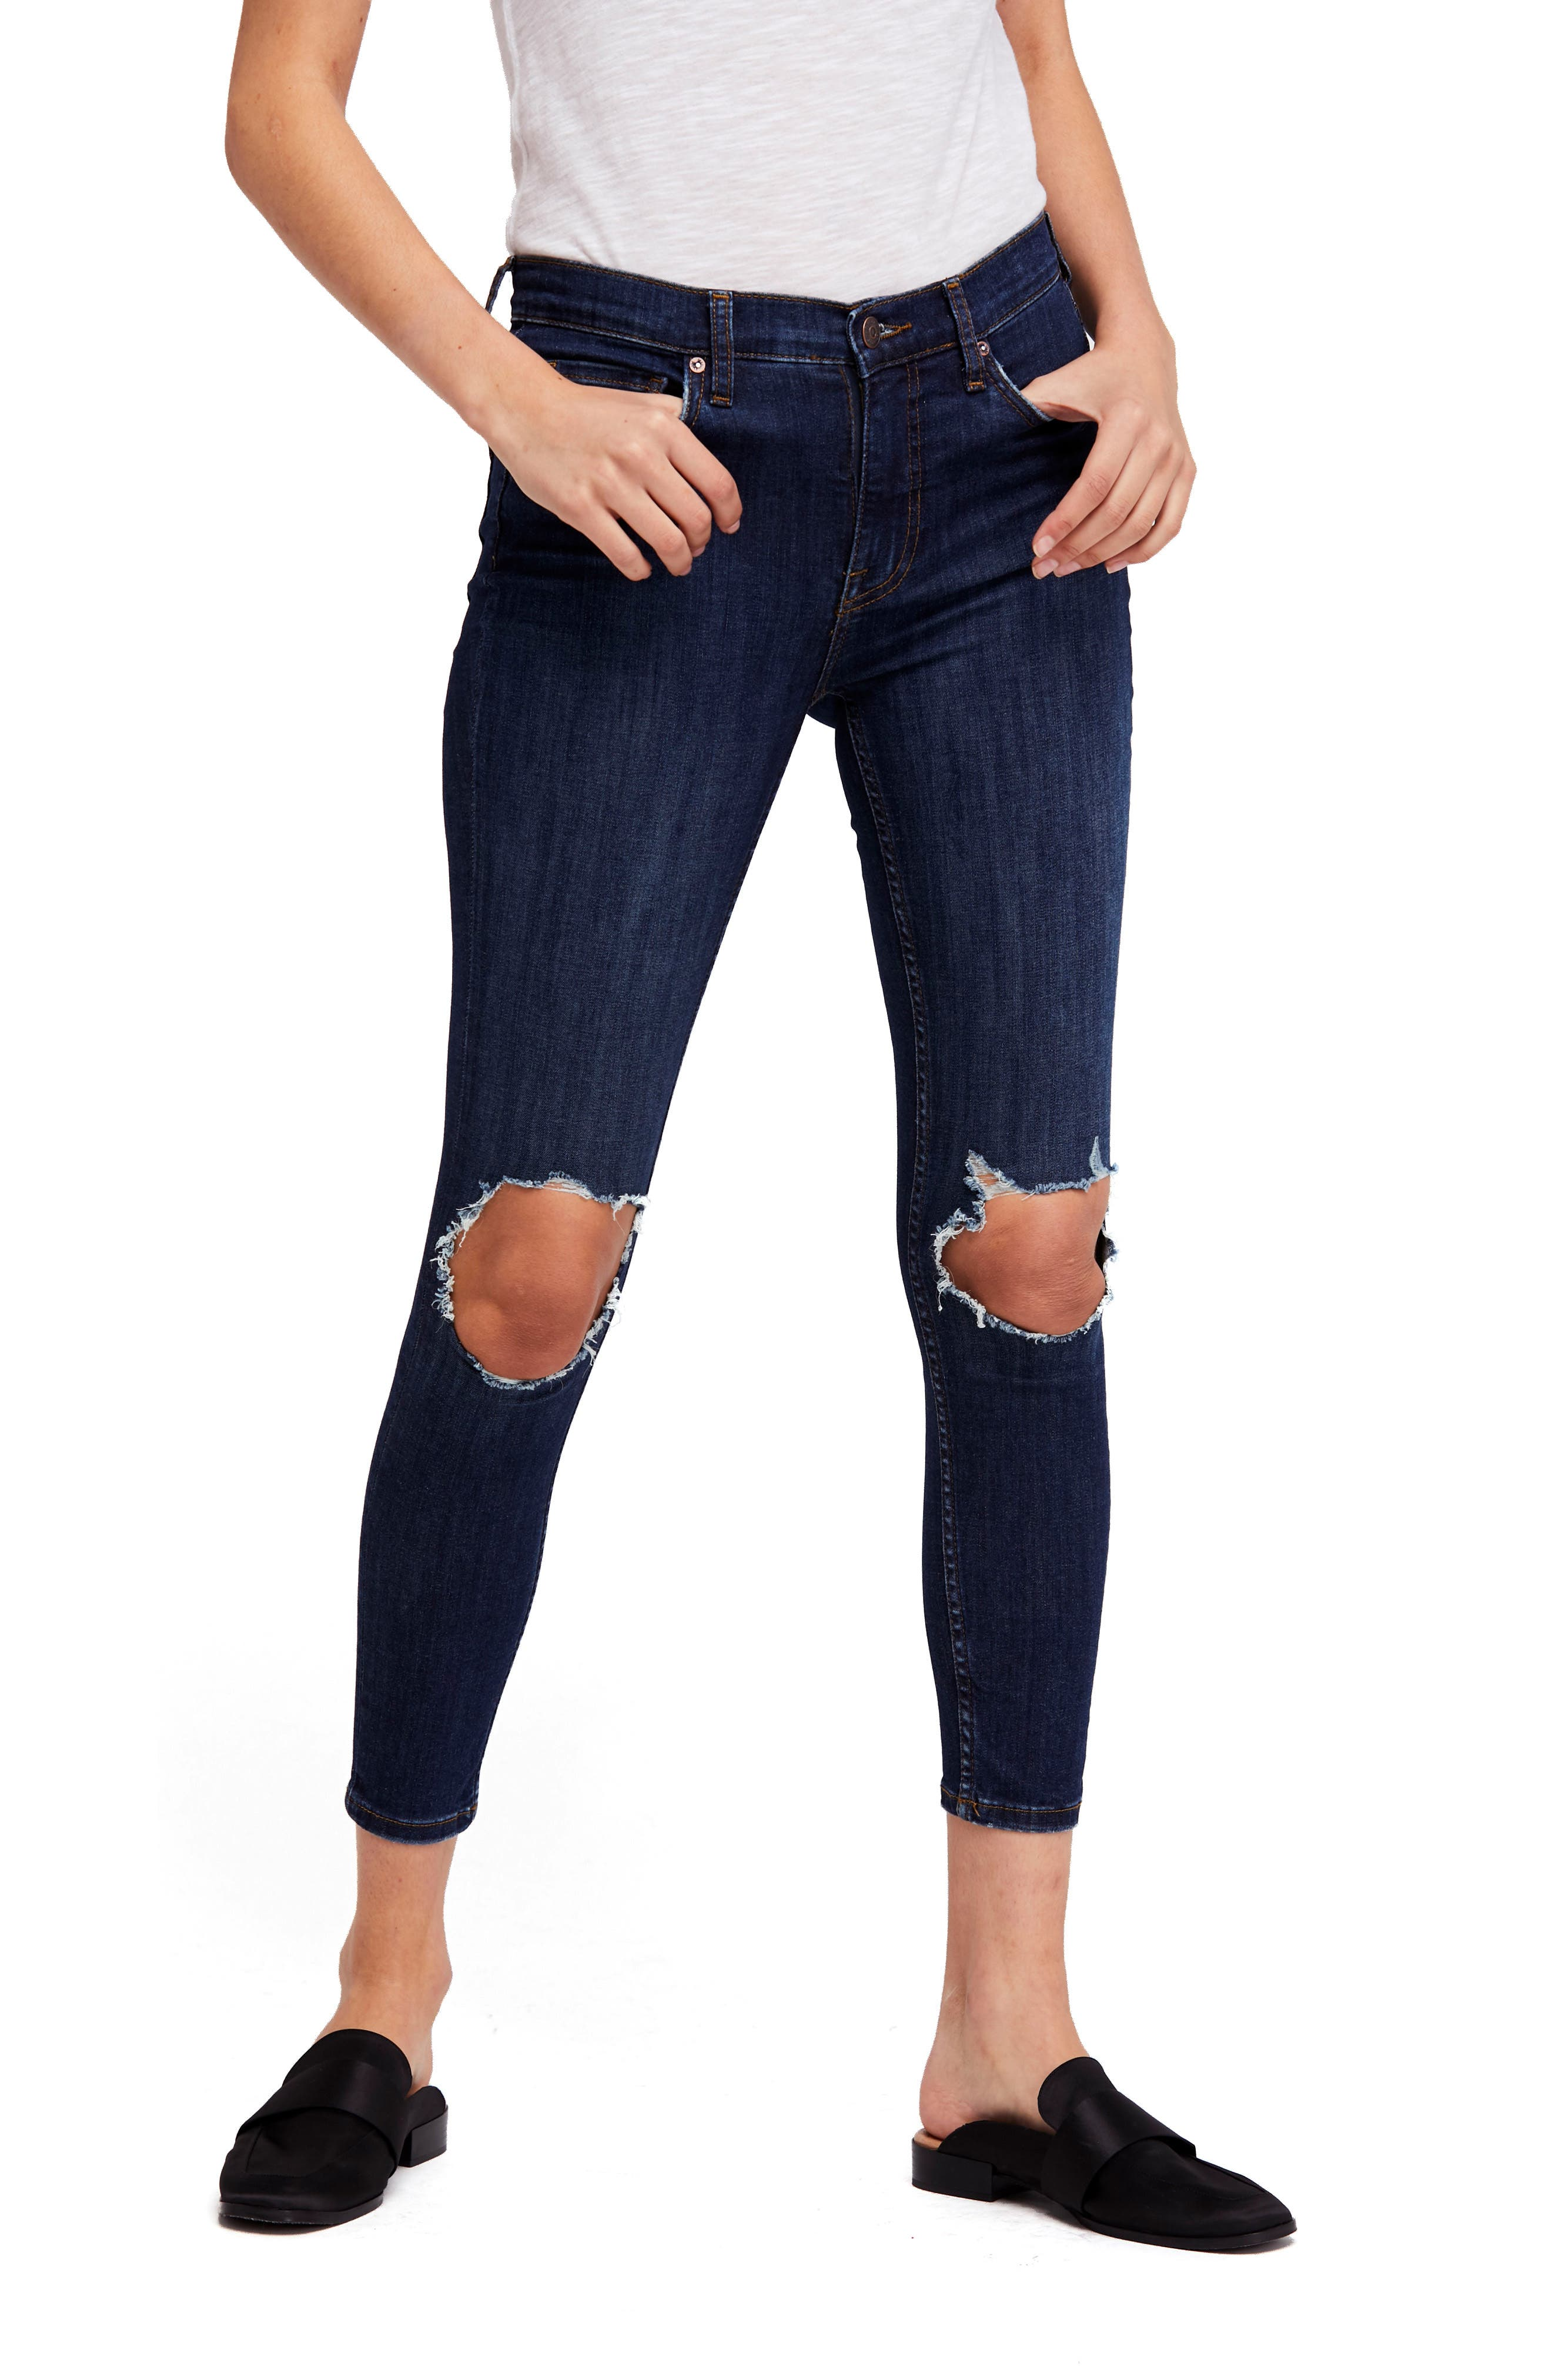 FREE PEOPLE We the Free by Free People High Waist Ankle Skinny Jeans, Main, color, DARK BLUE